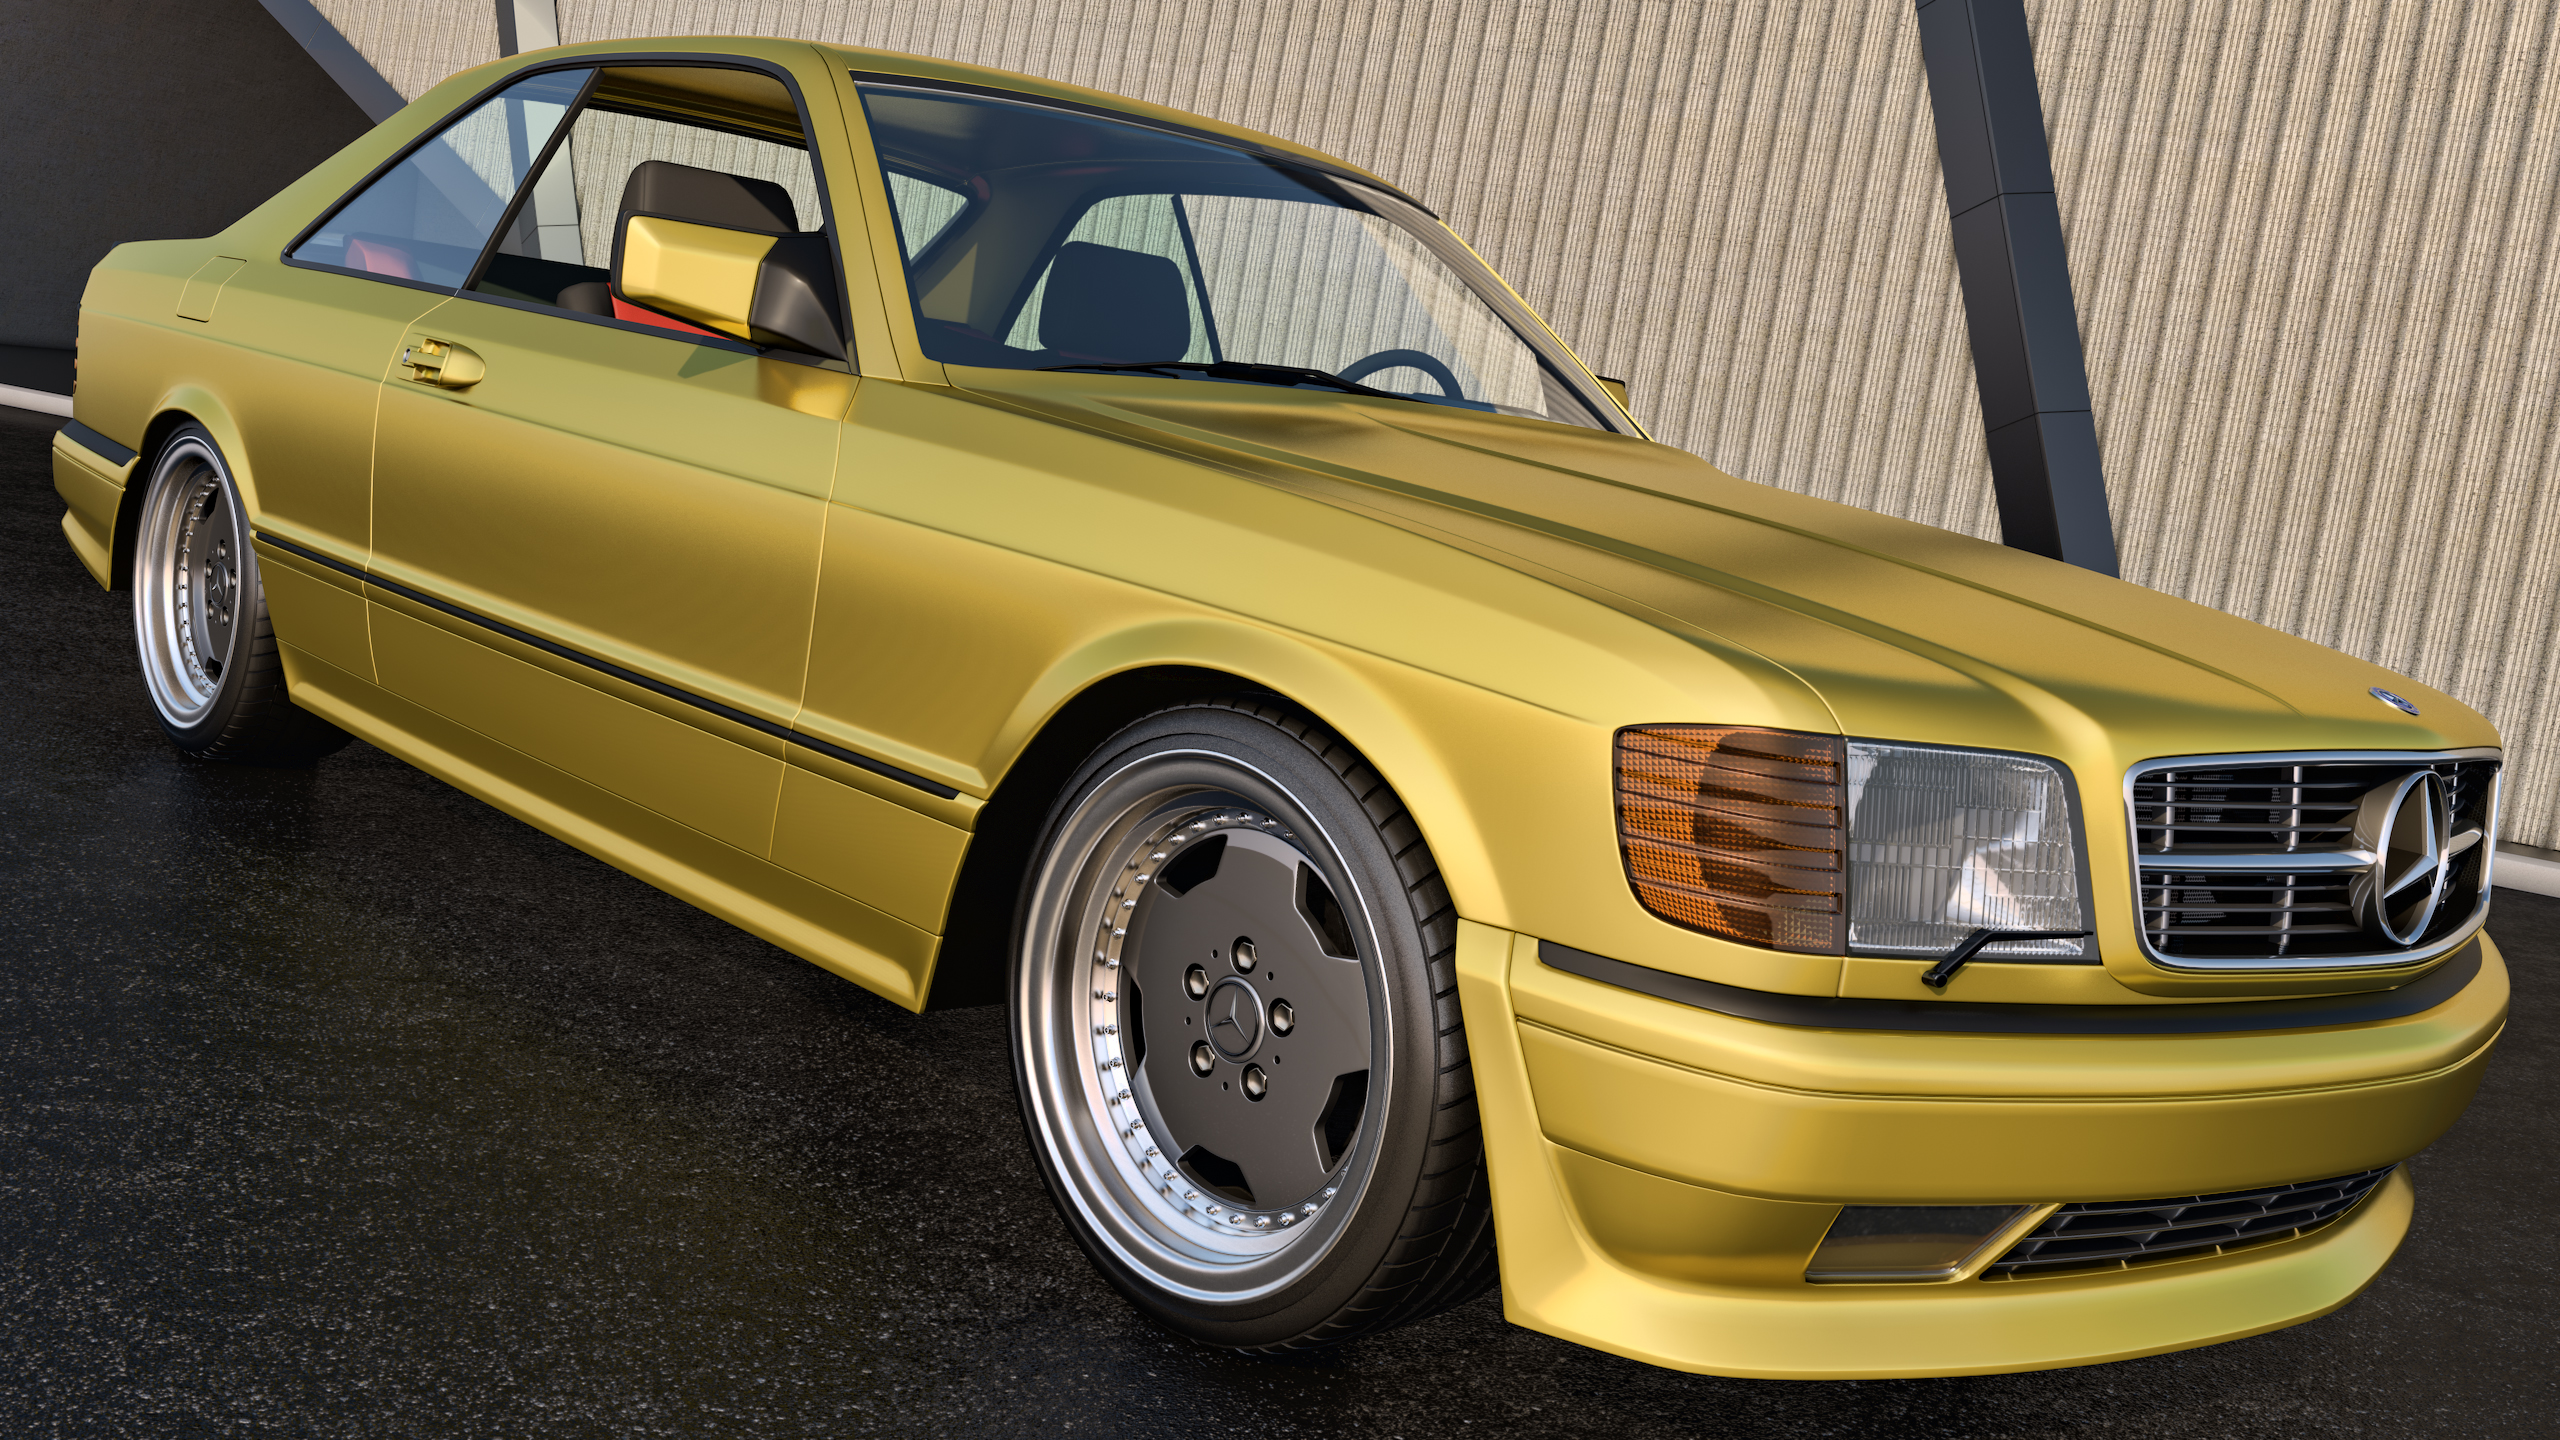 1991 mercedes benz 560 sec amg by samcurry on deviantart